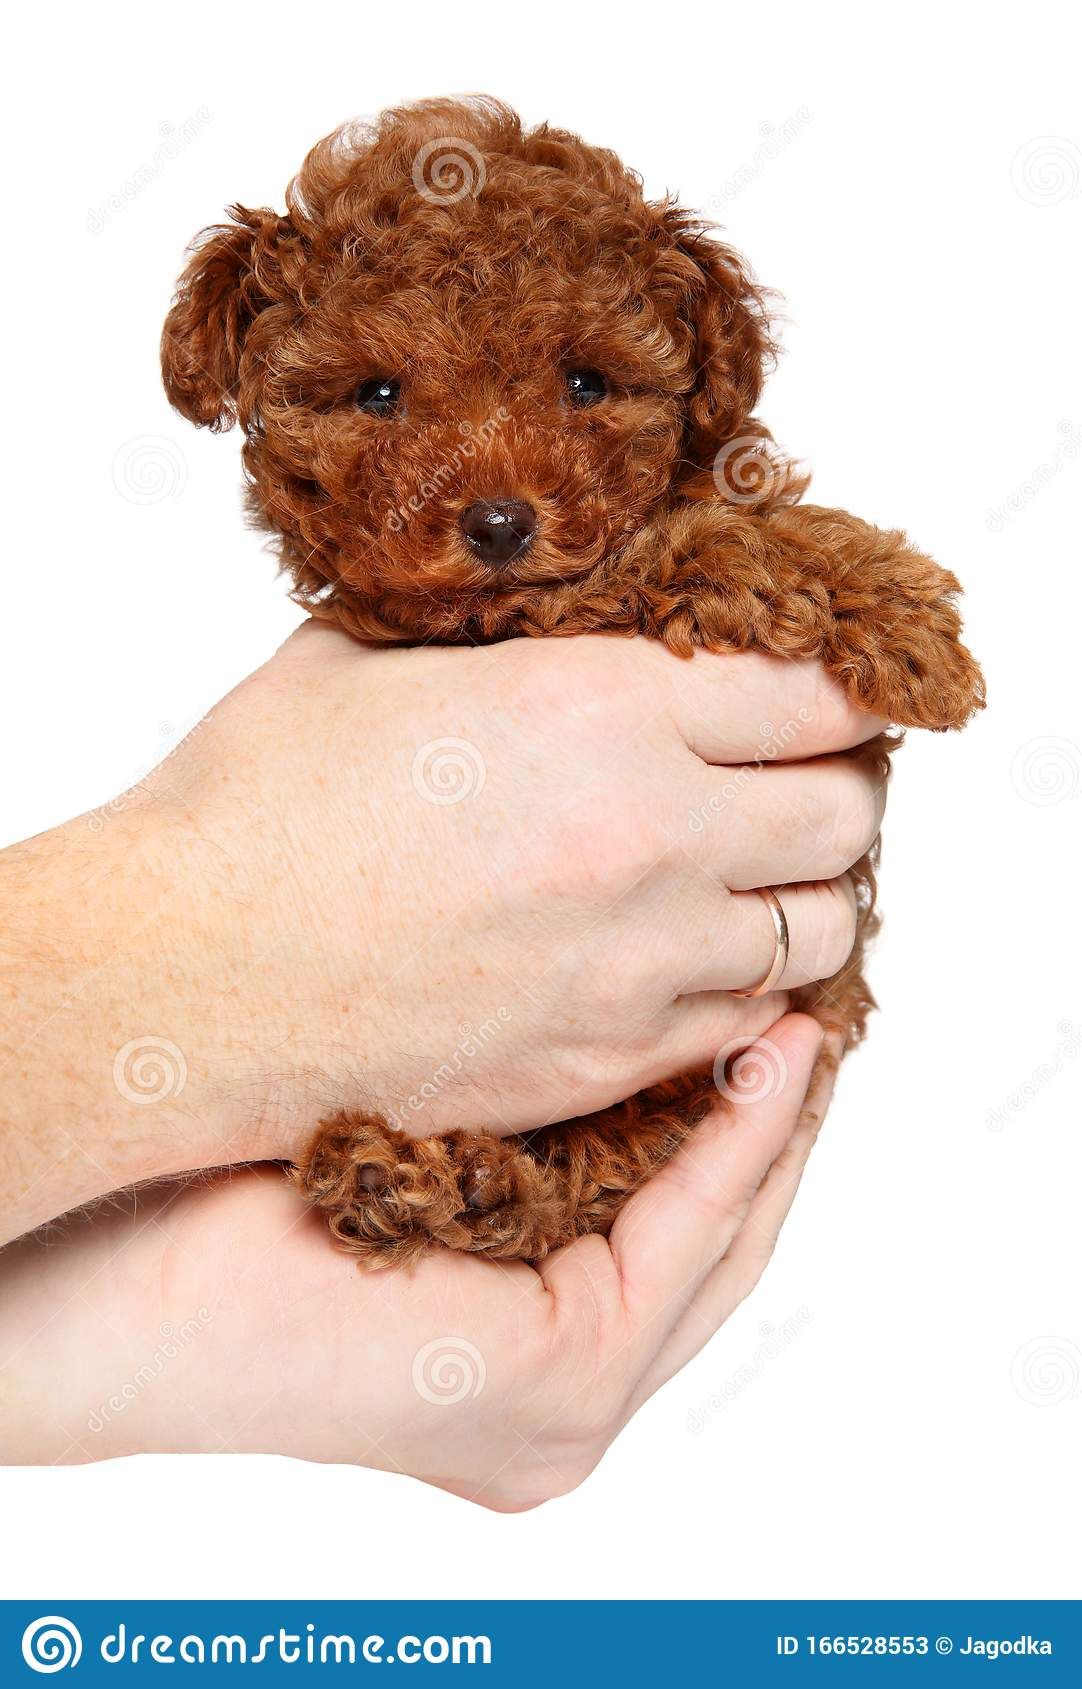 Toy Poodle Puppy In Hands Stock Image Image Of Brown 166528553